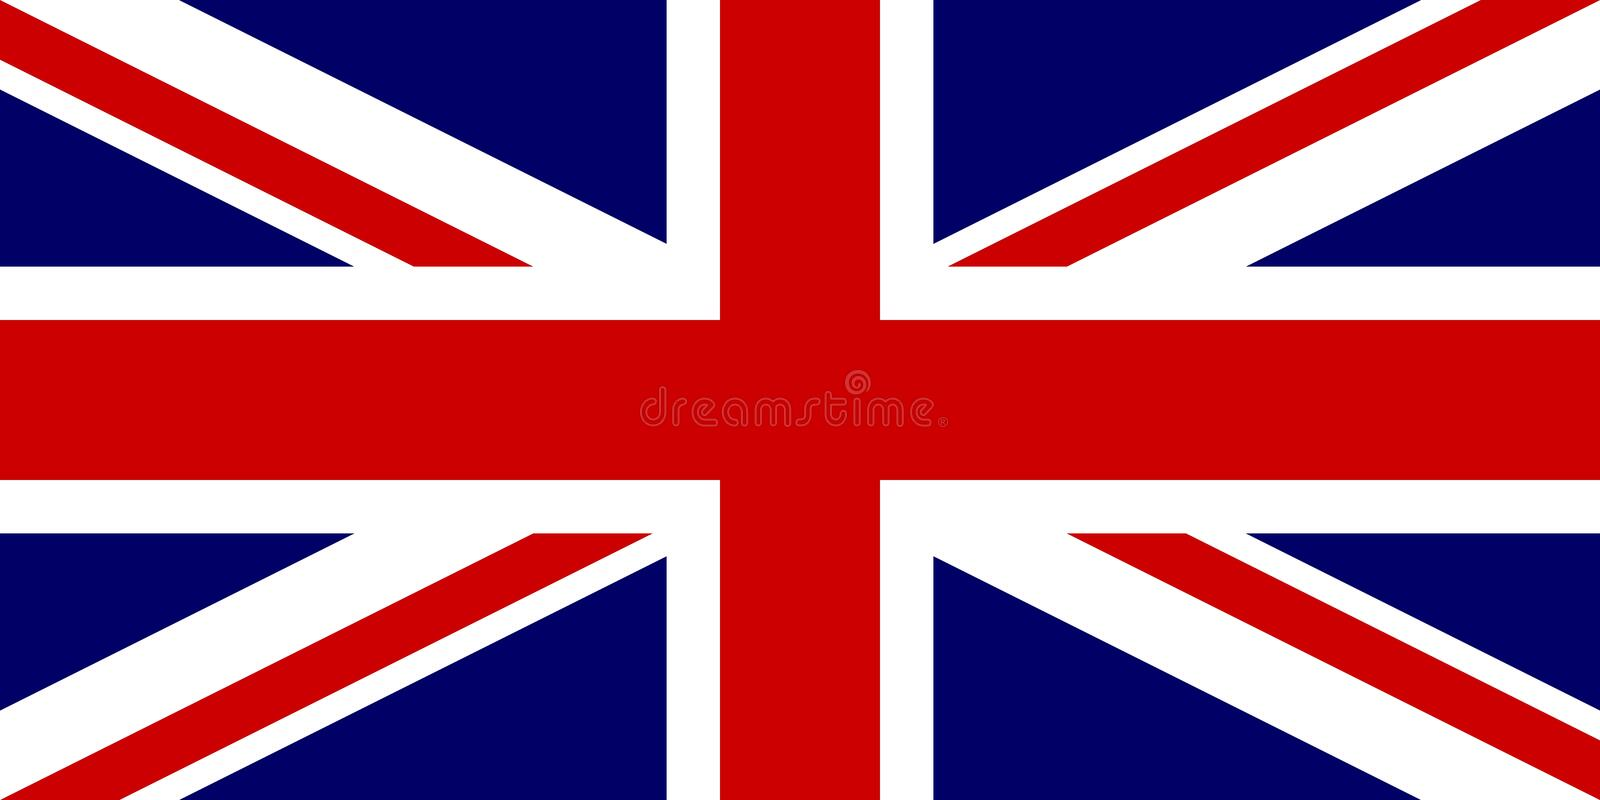 Official flag of United Kingdom of Great Britain and Northern Ireland. UK flag aka Union Jack. Vector illustration vector illustration